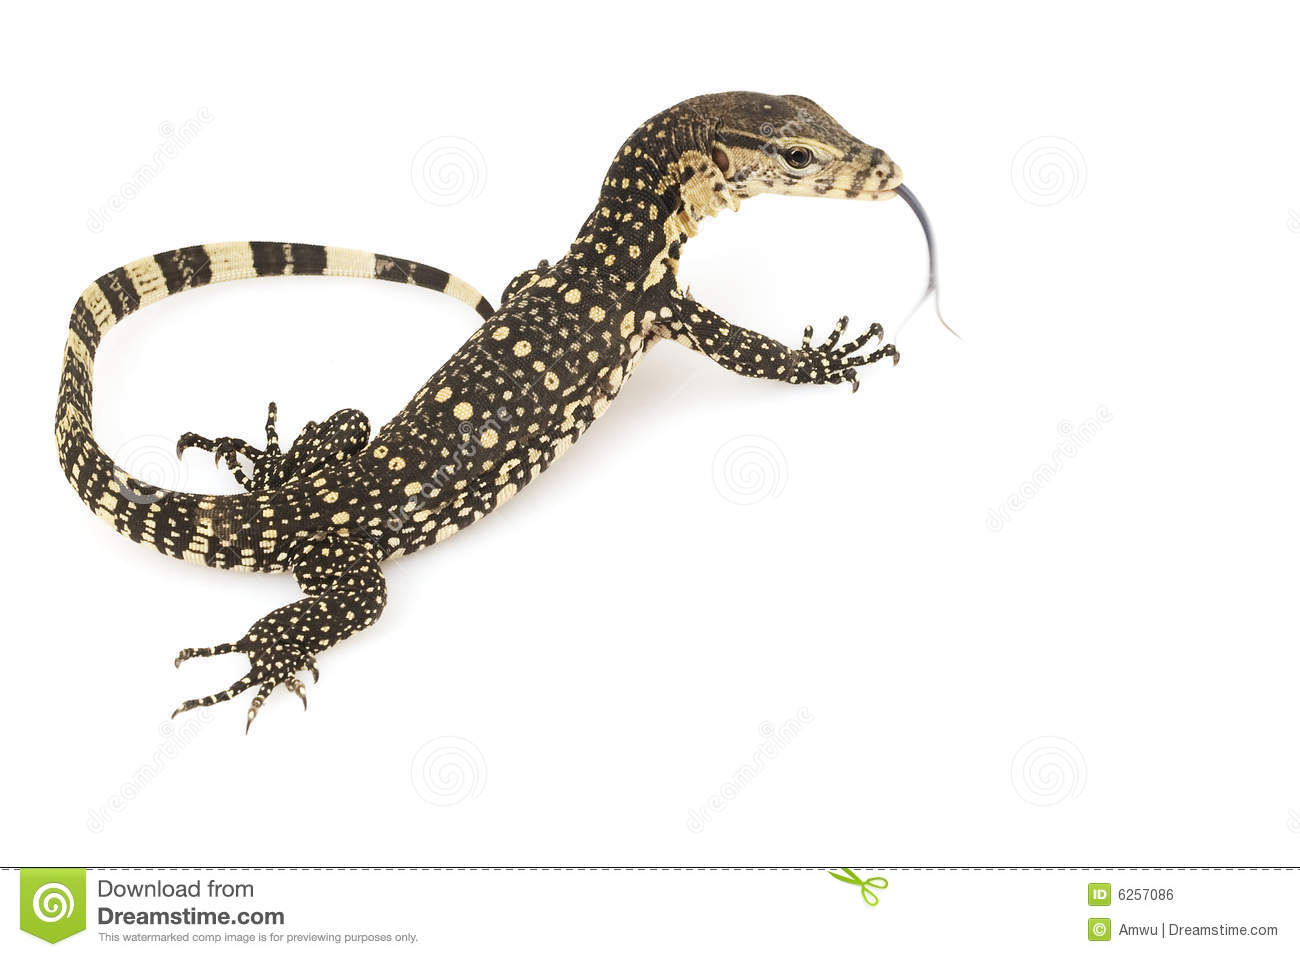 Asian Water Monitor Lizard Royalty Free Stock Image.